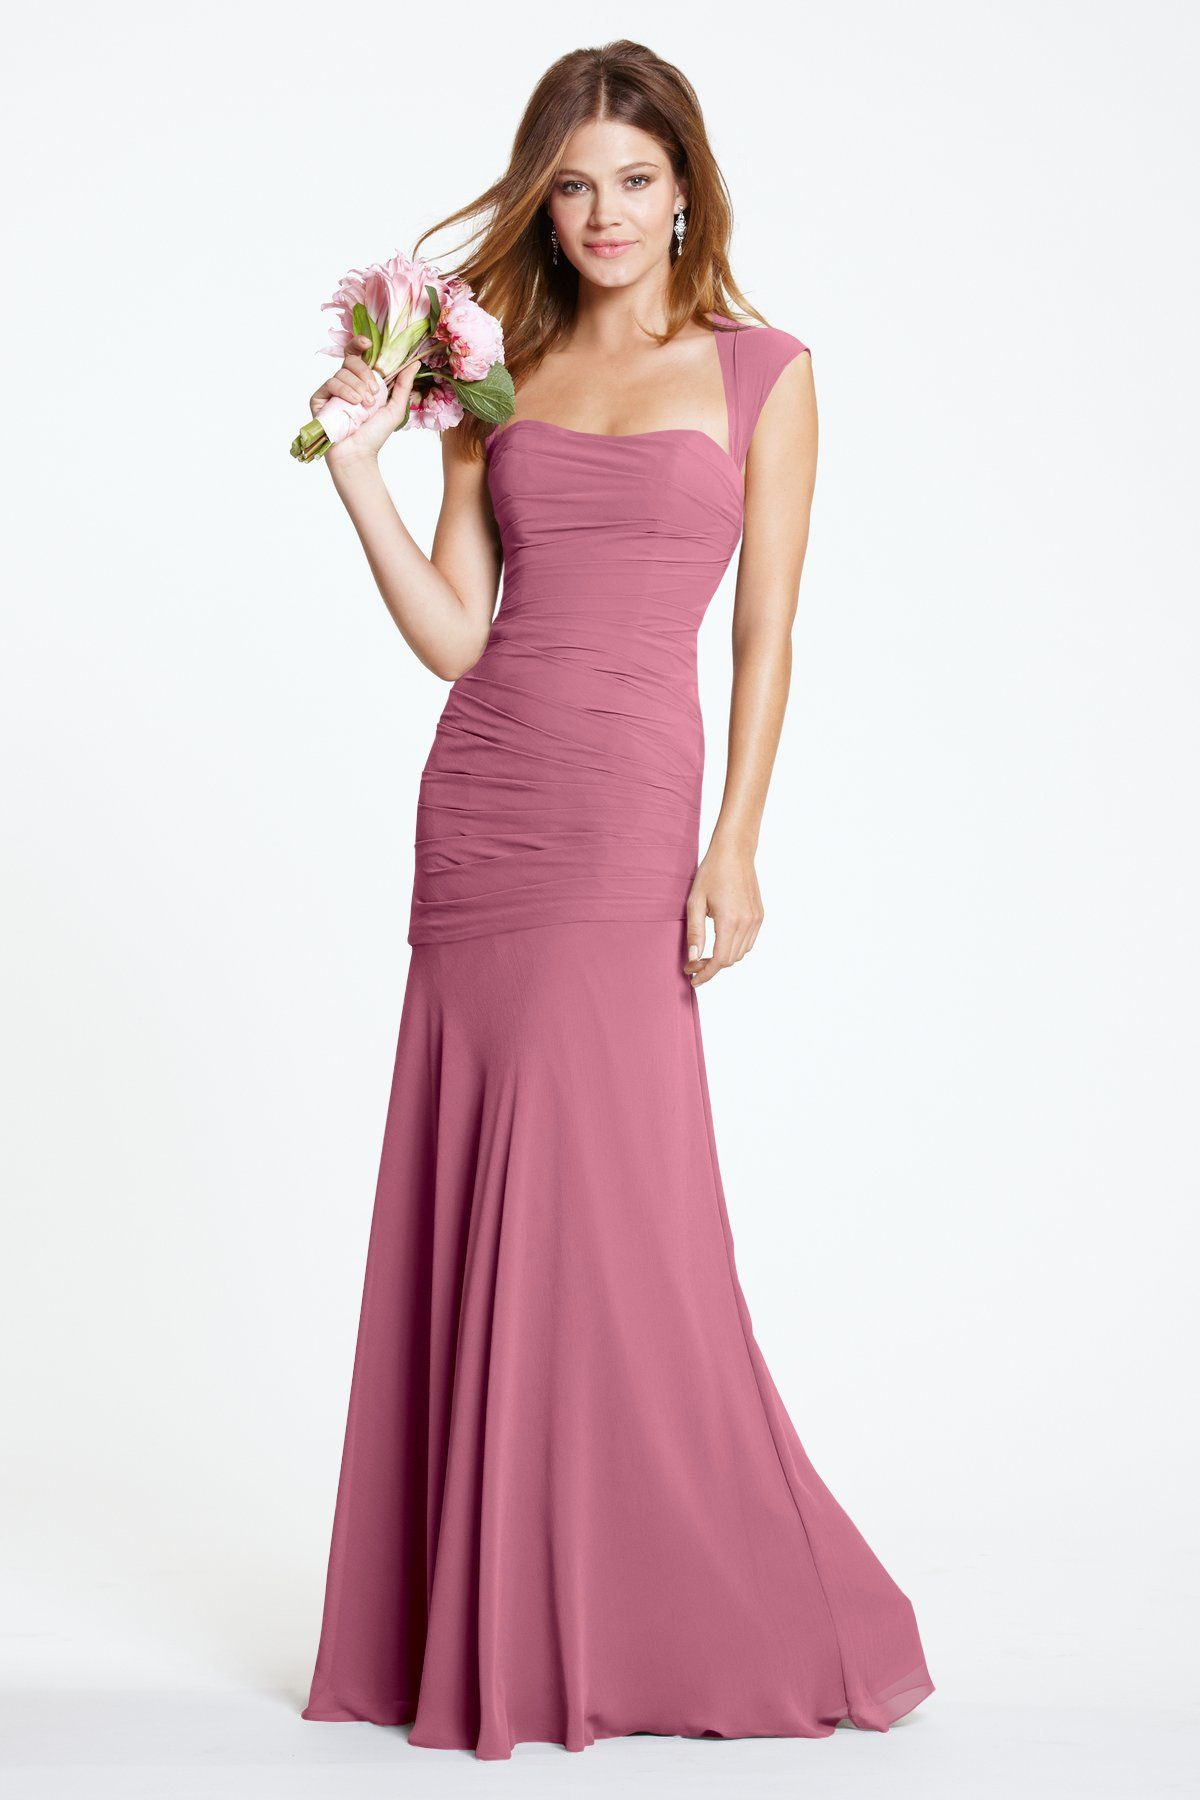 Watters Maids Dress Iman | Wedding fashion | Pinterest